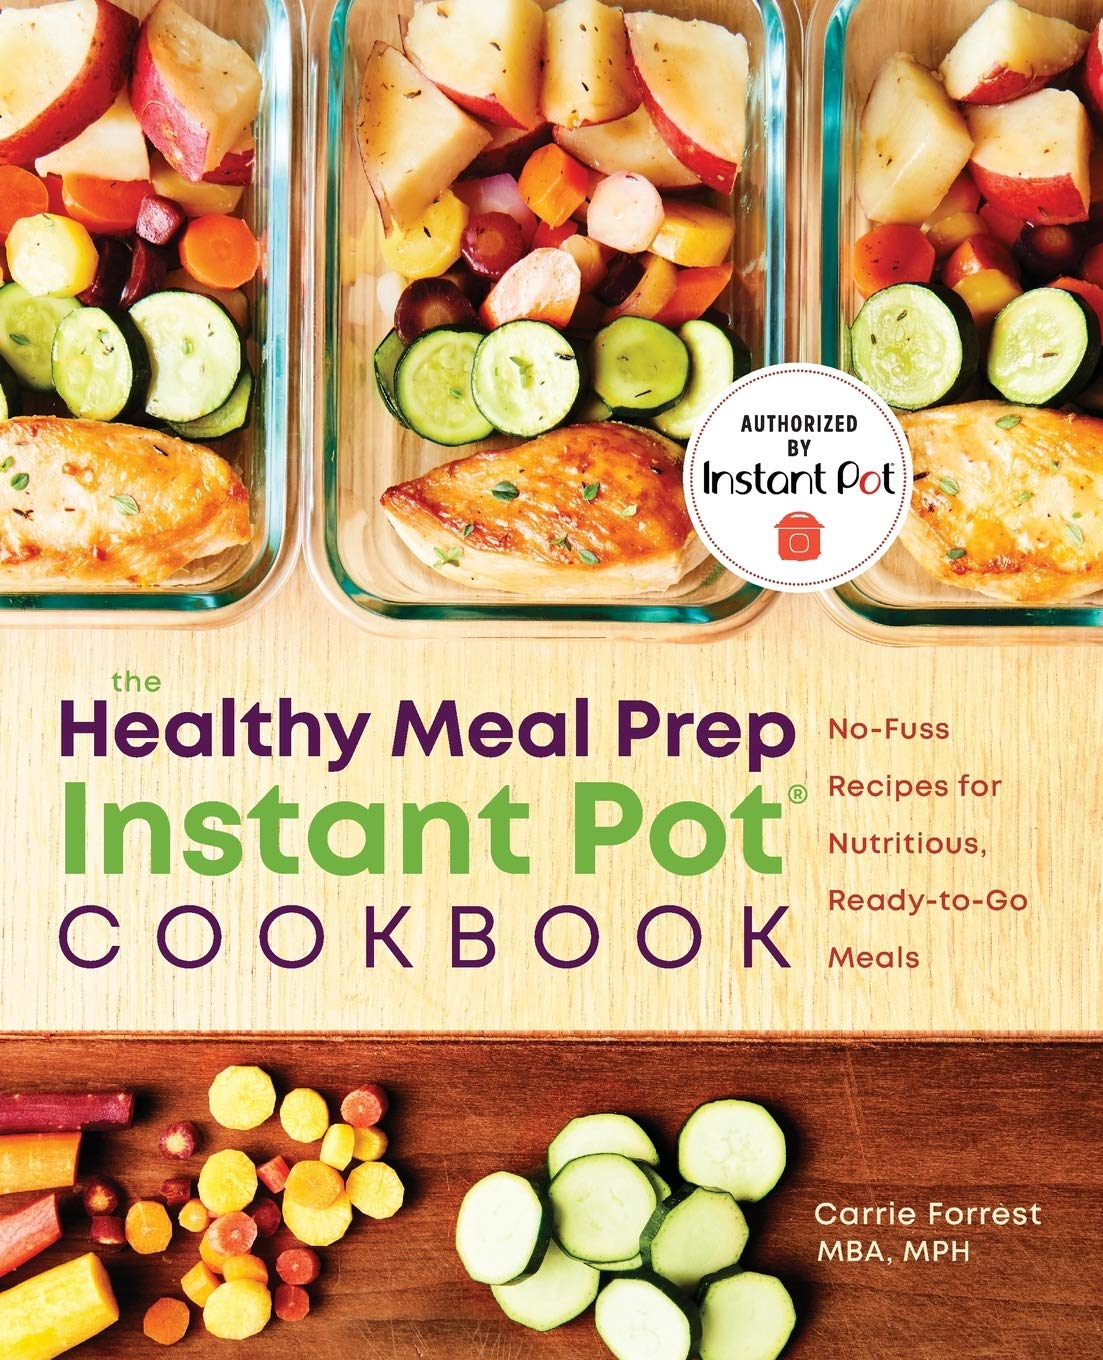 Healthy Meal Instant Cookbook Ready product image